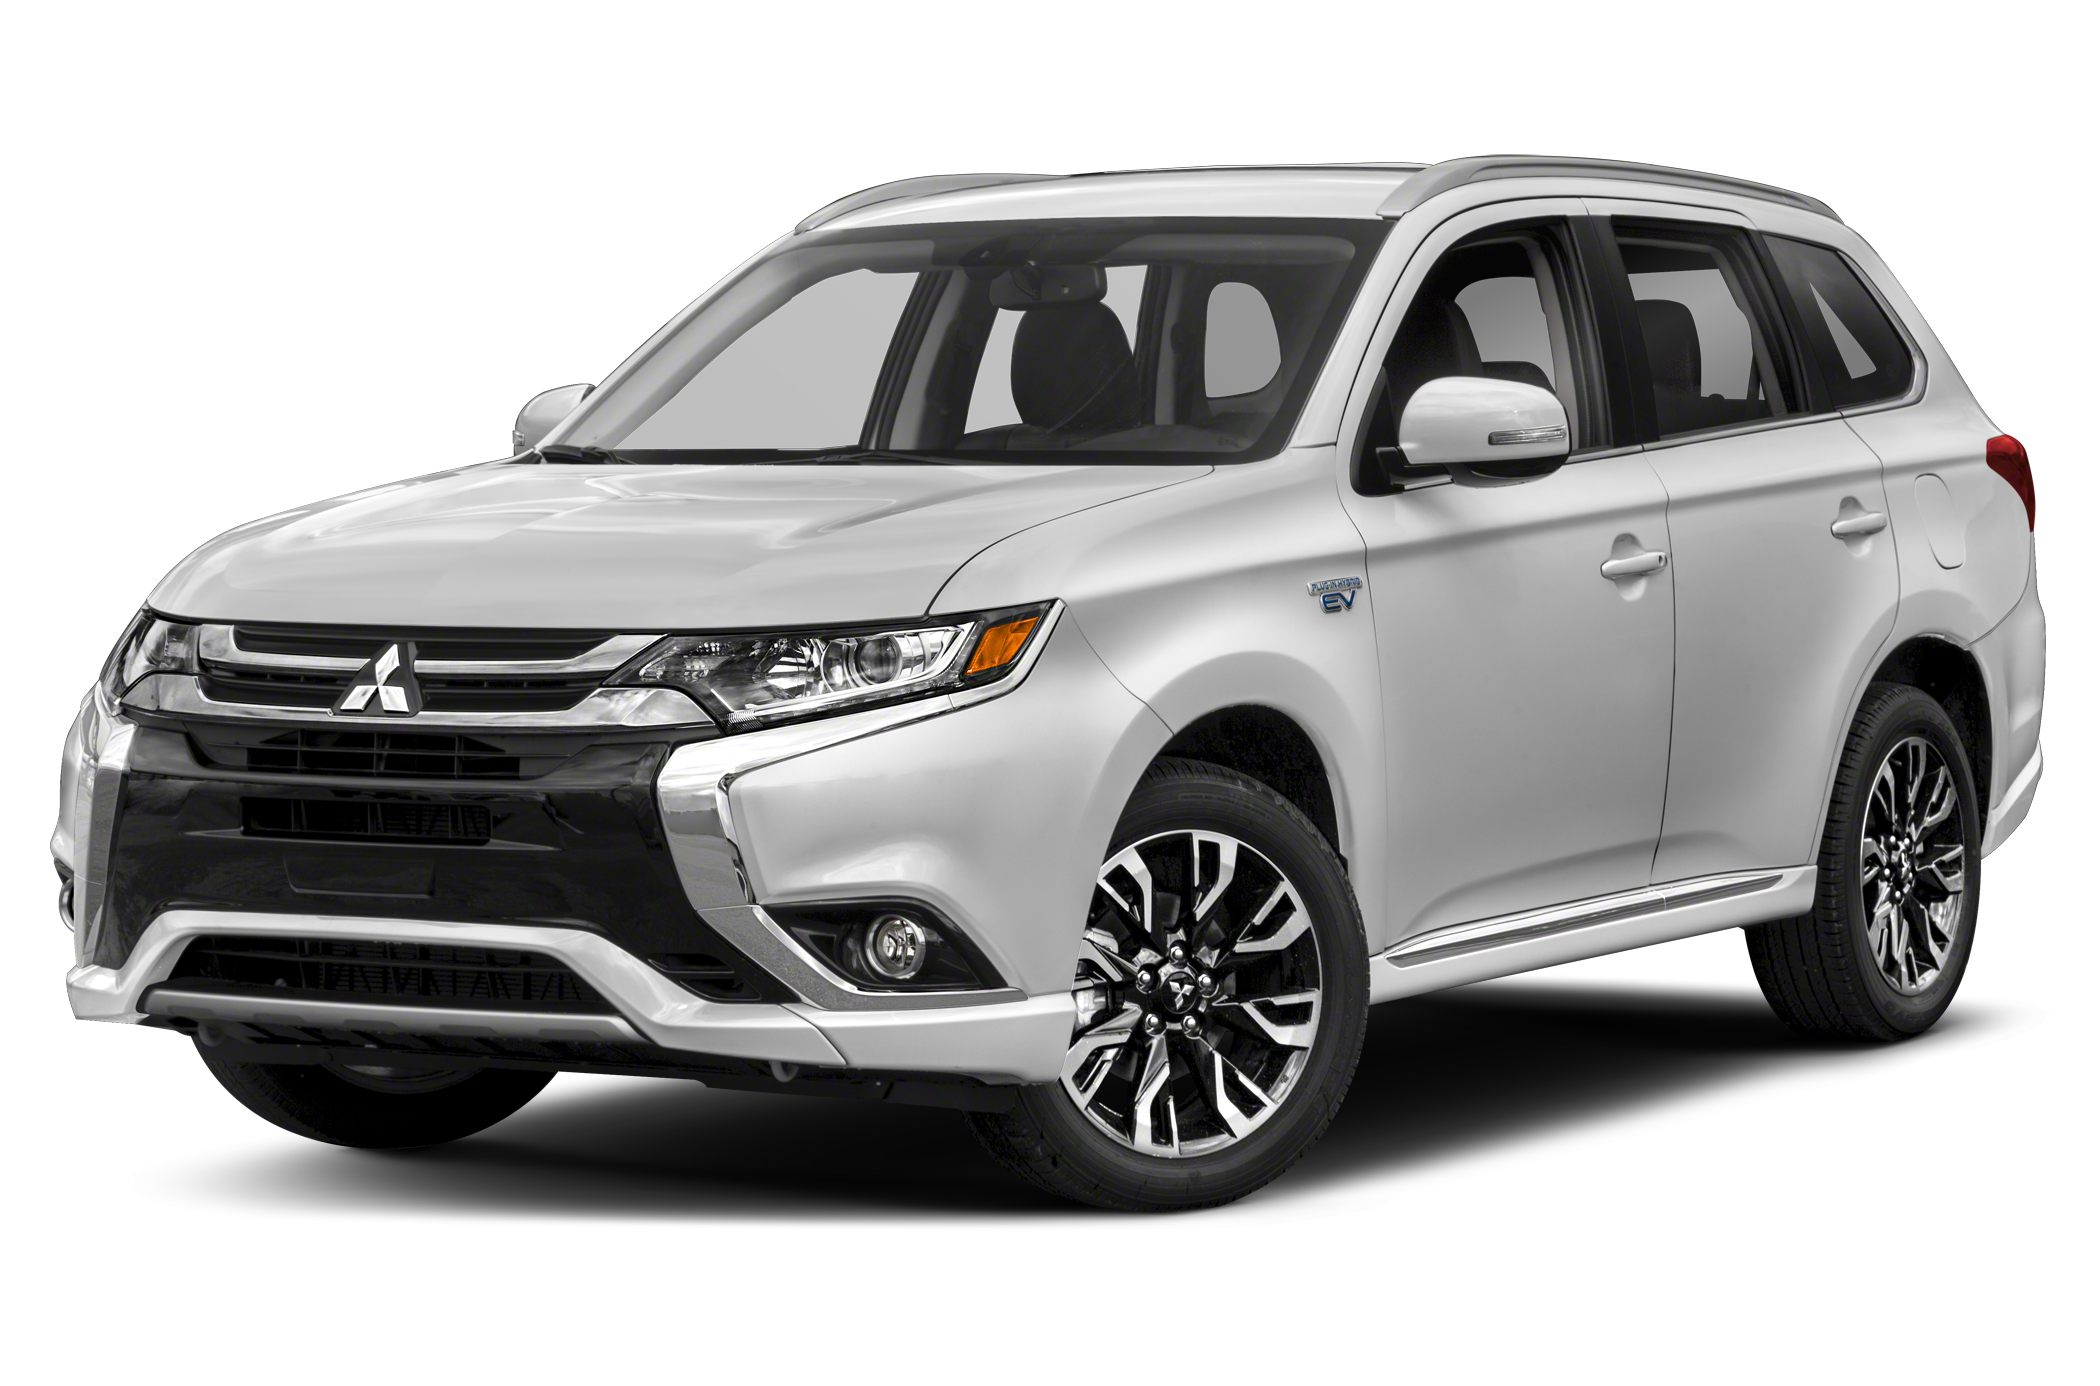 2018 Mitsubishi Outlander Phev Pricing And Specs